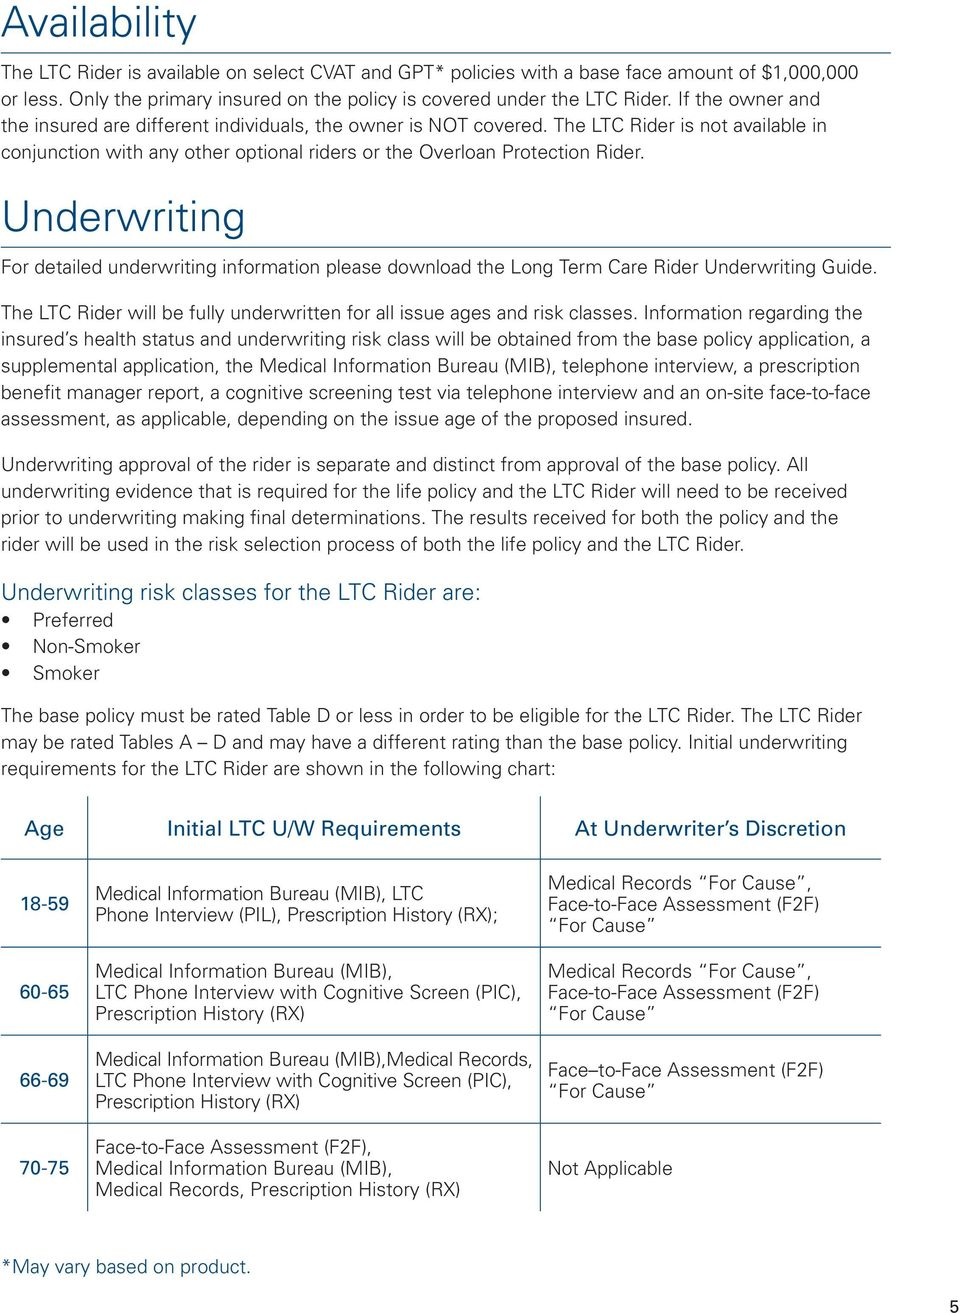 Underwriting For detailed underwriting information please download the Long Term Care Rider Underwriting Guide. The LTC Rider will be fully underwritten for all issue ages and risk classes.